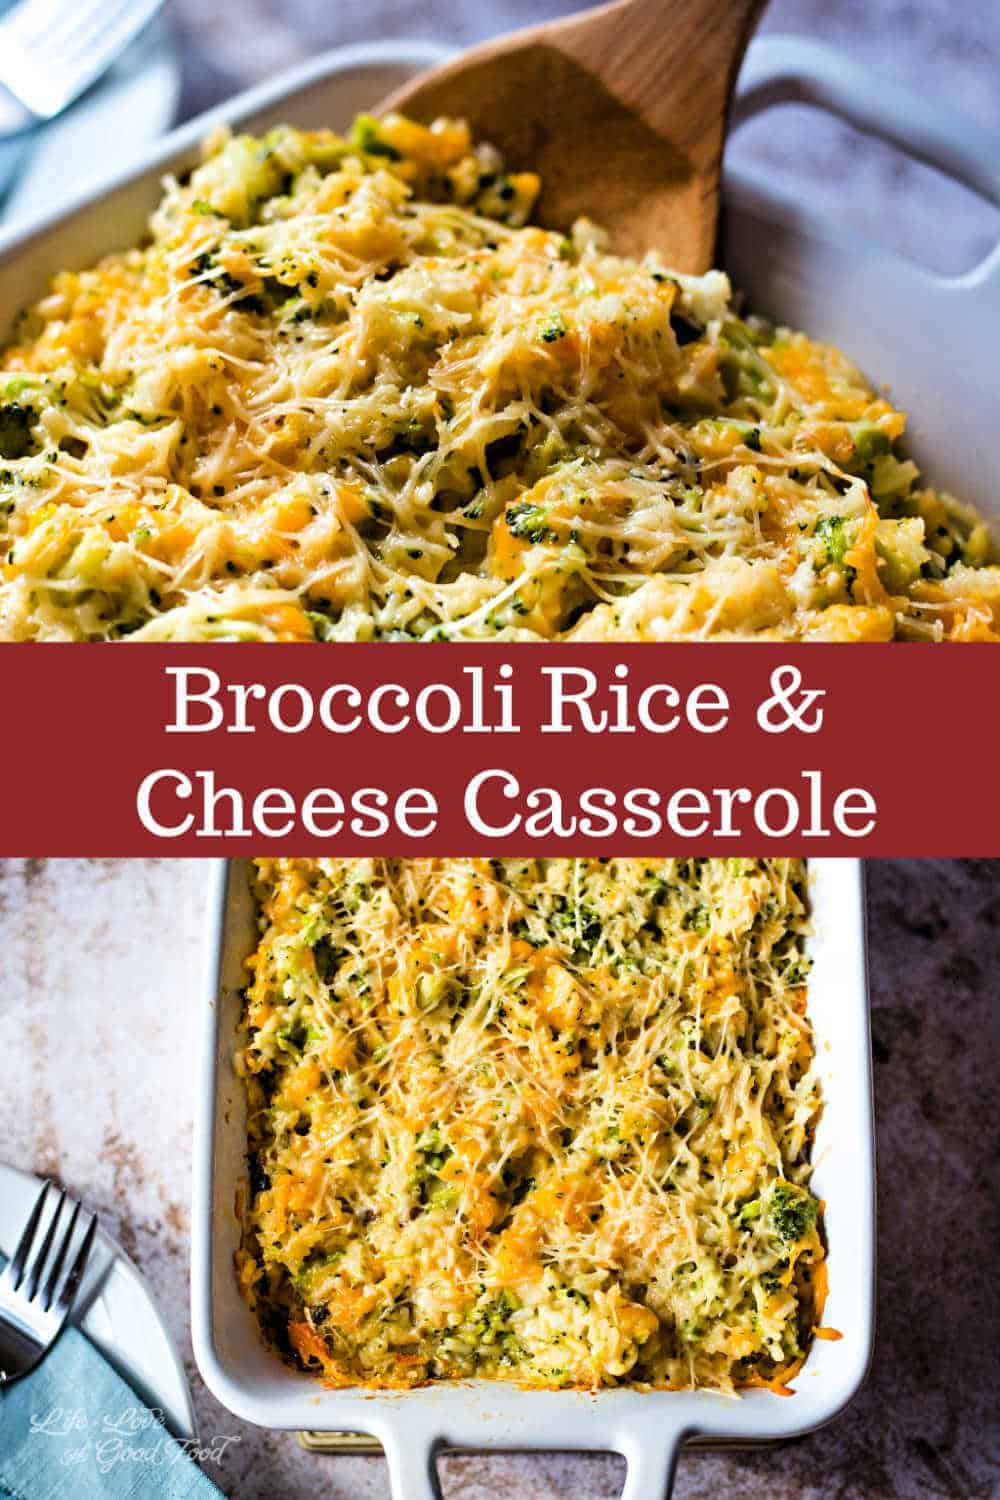 This easy Southern recipe is a delicious side dish for barbecue chicken, pork chops, or even meatloaf. With fresh broccoli and mushrooms, this casserole also uses both cheddar and Parmesan cheese for extra cheesy goodness!